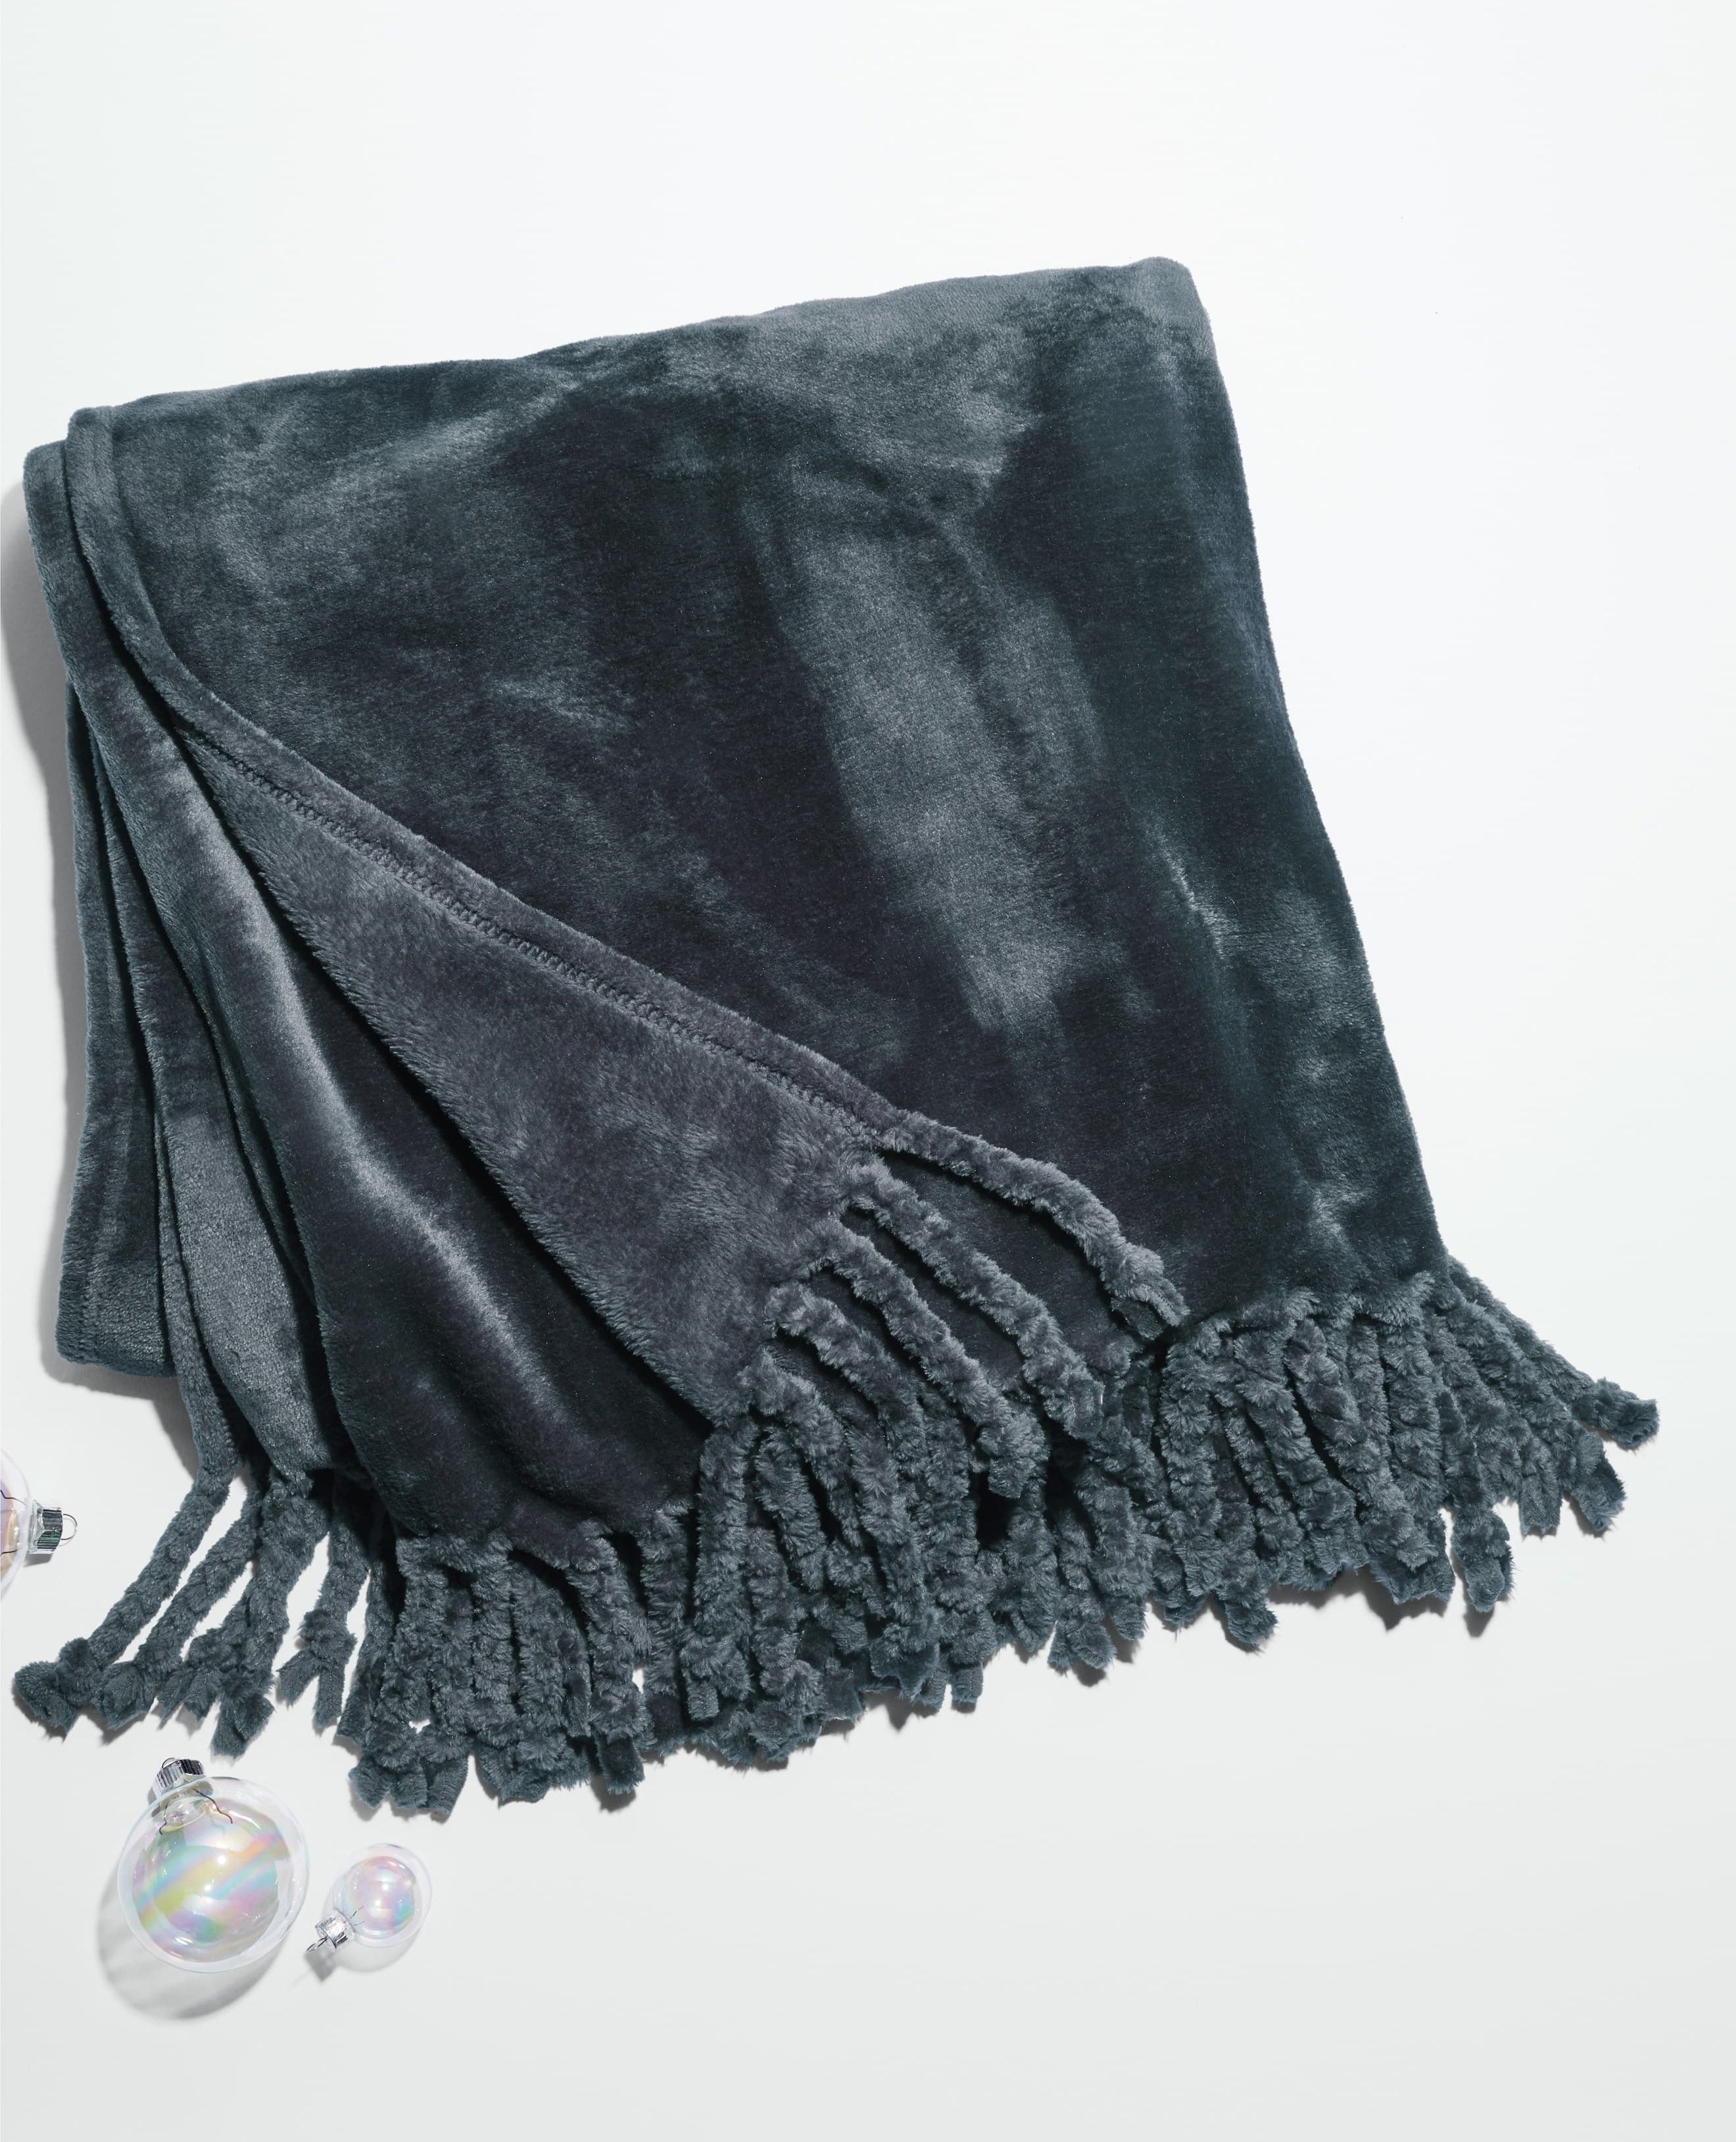 The dark grey velvet-link blanket with fringe on the ends